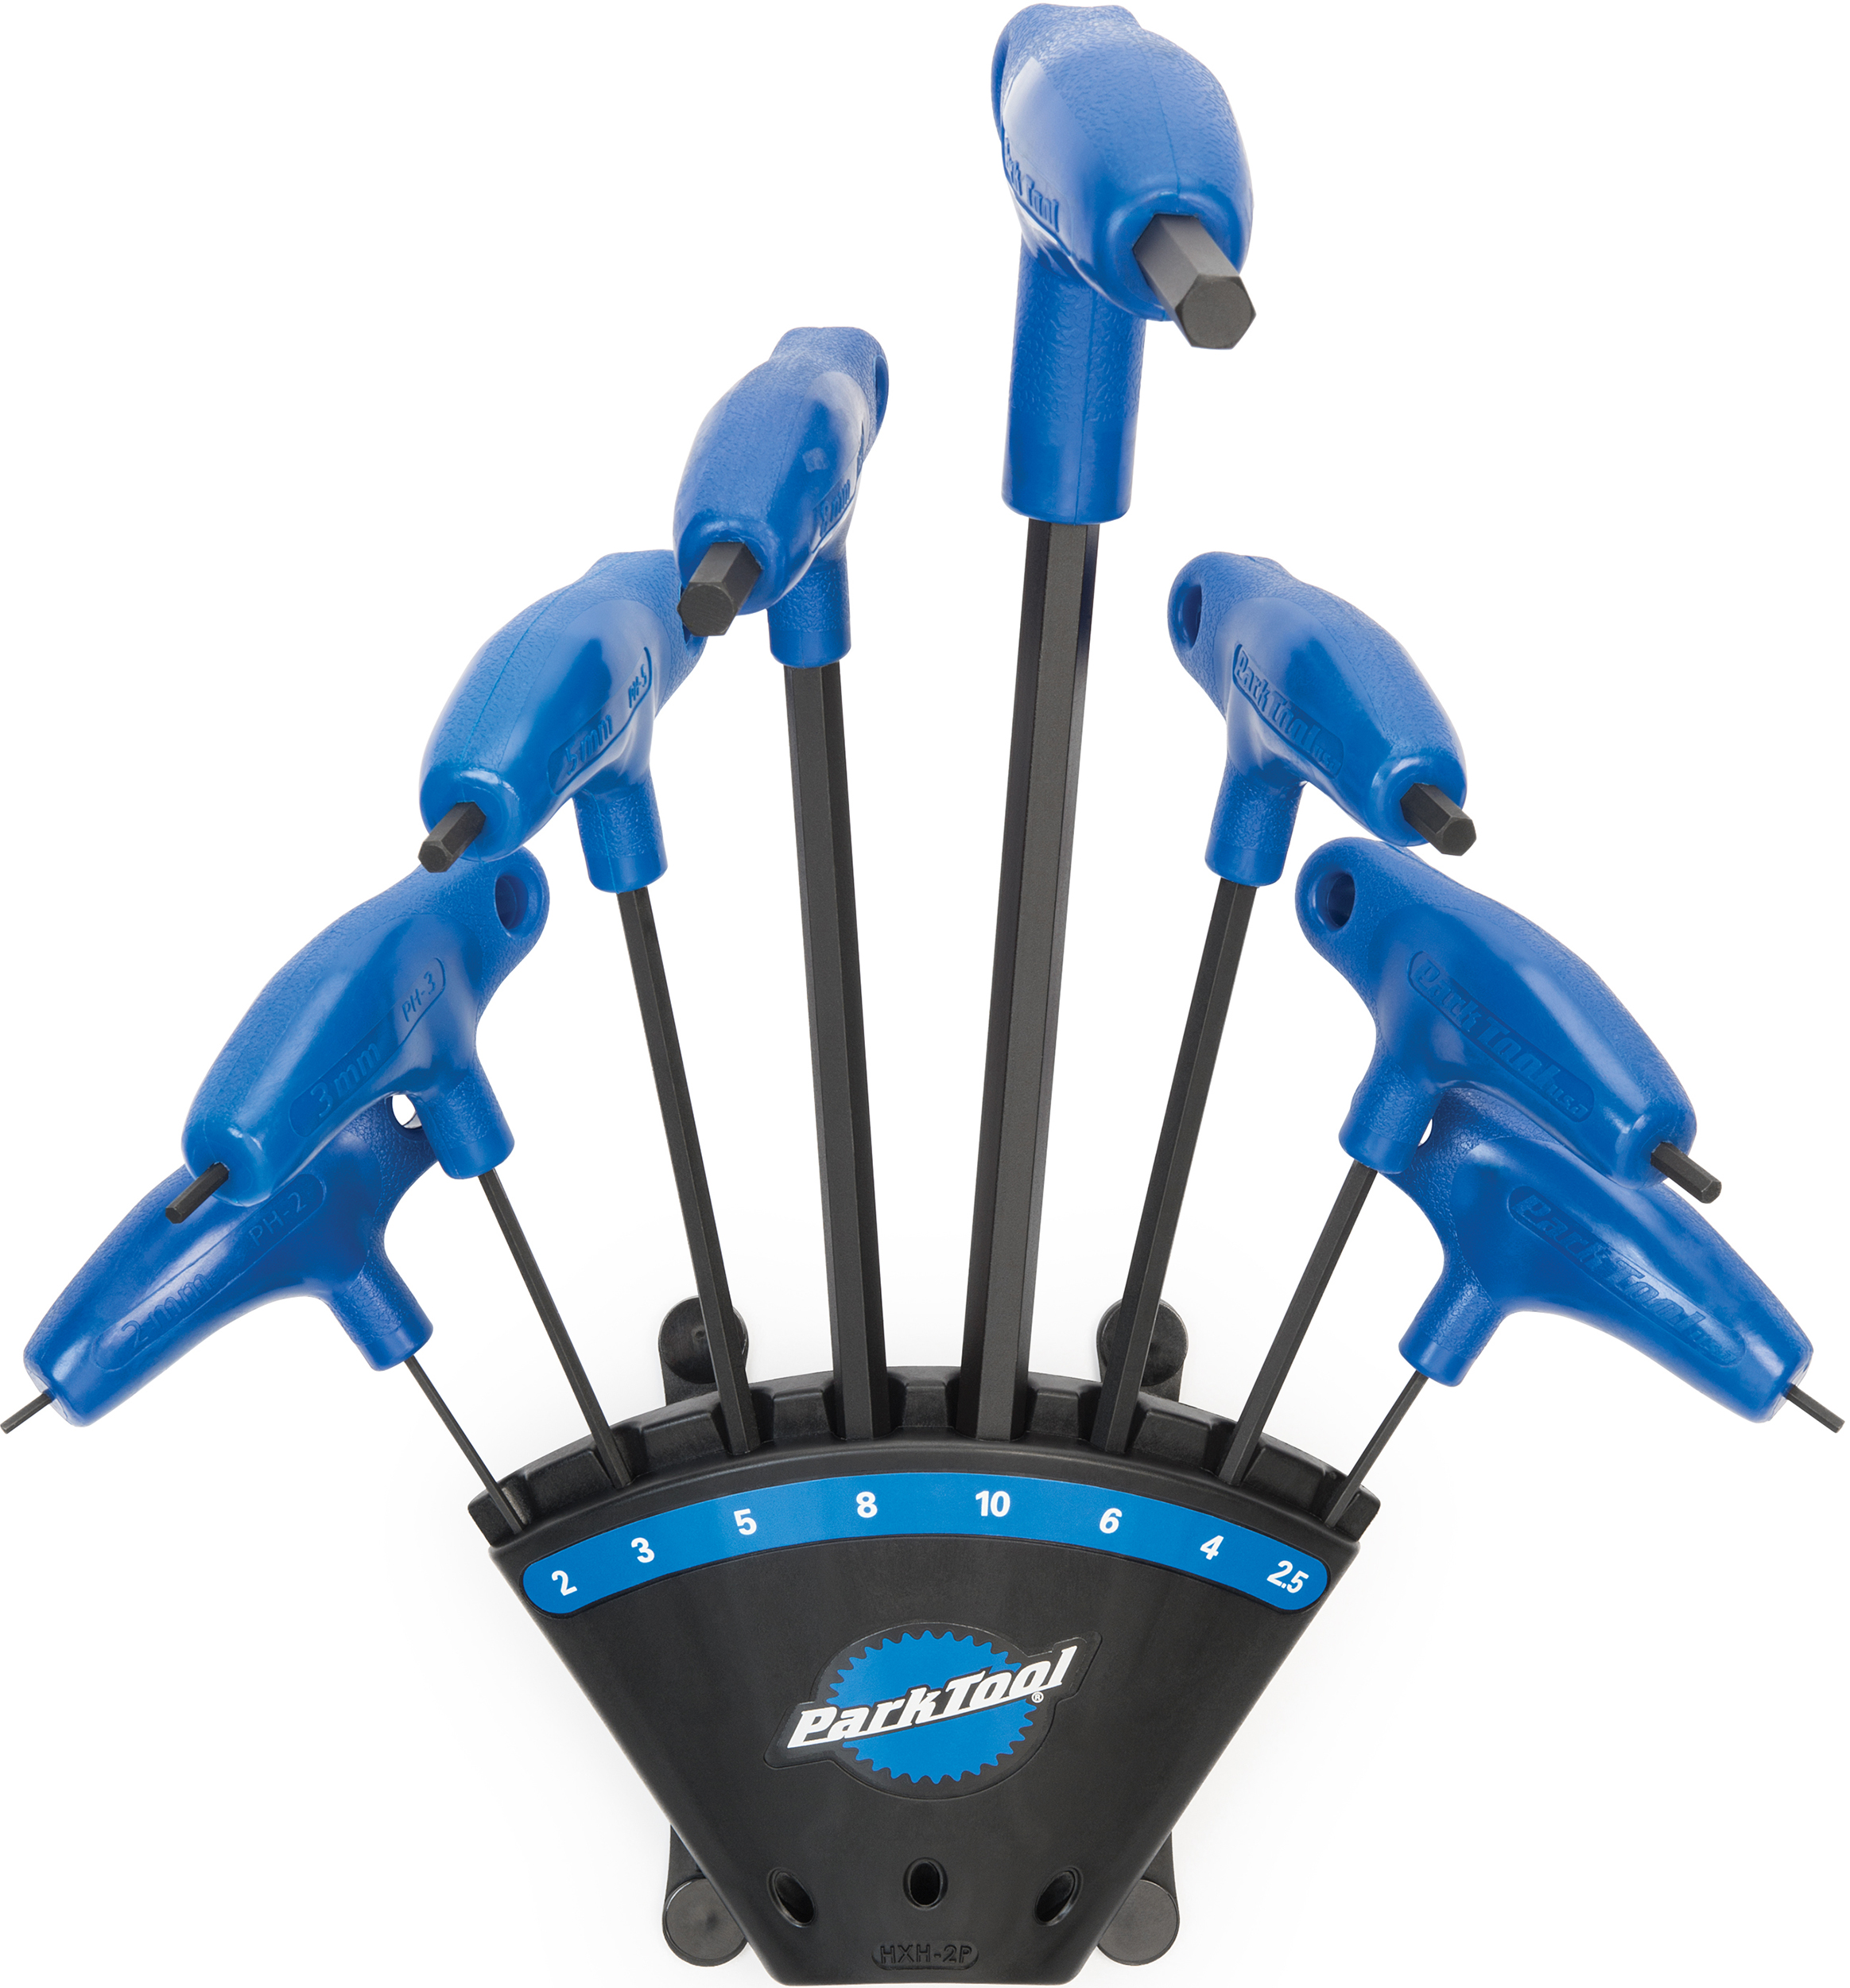 Park Tool TWS-1 8-Piece L-Shaped Torx Compatible Bicycle Wrench Set with Holder